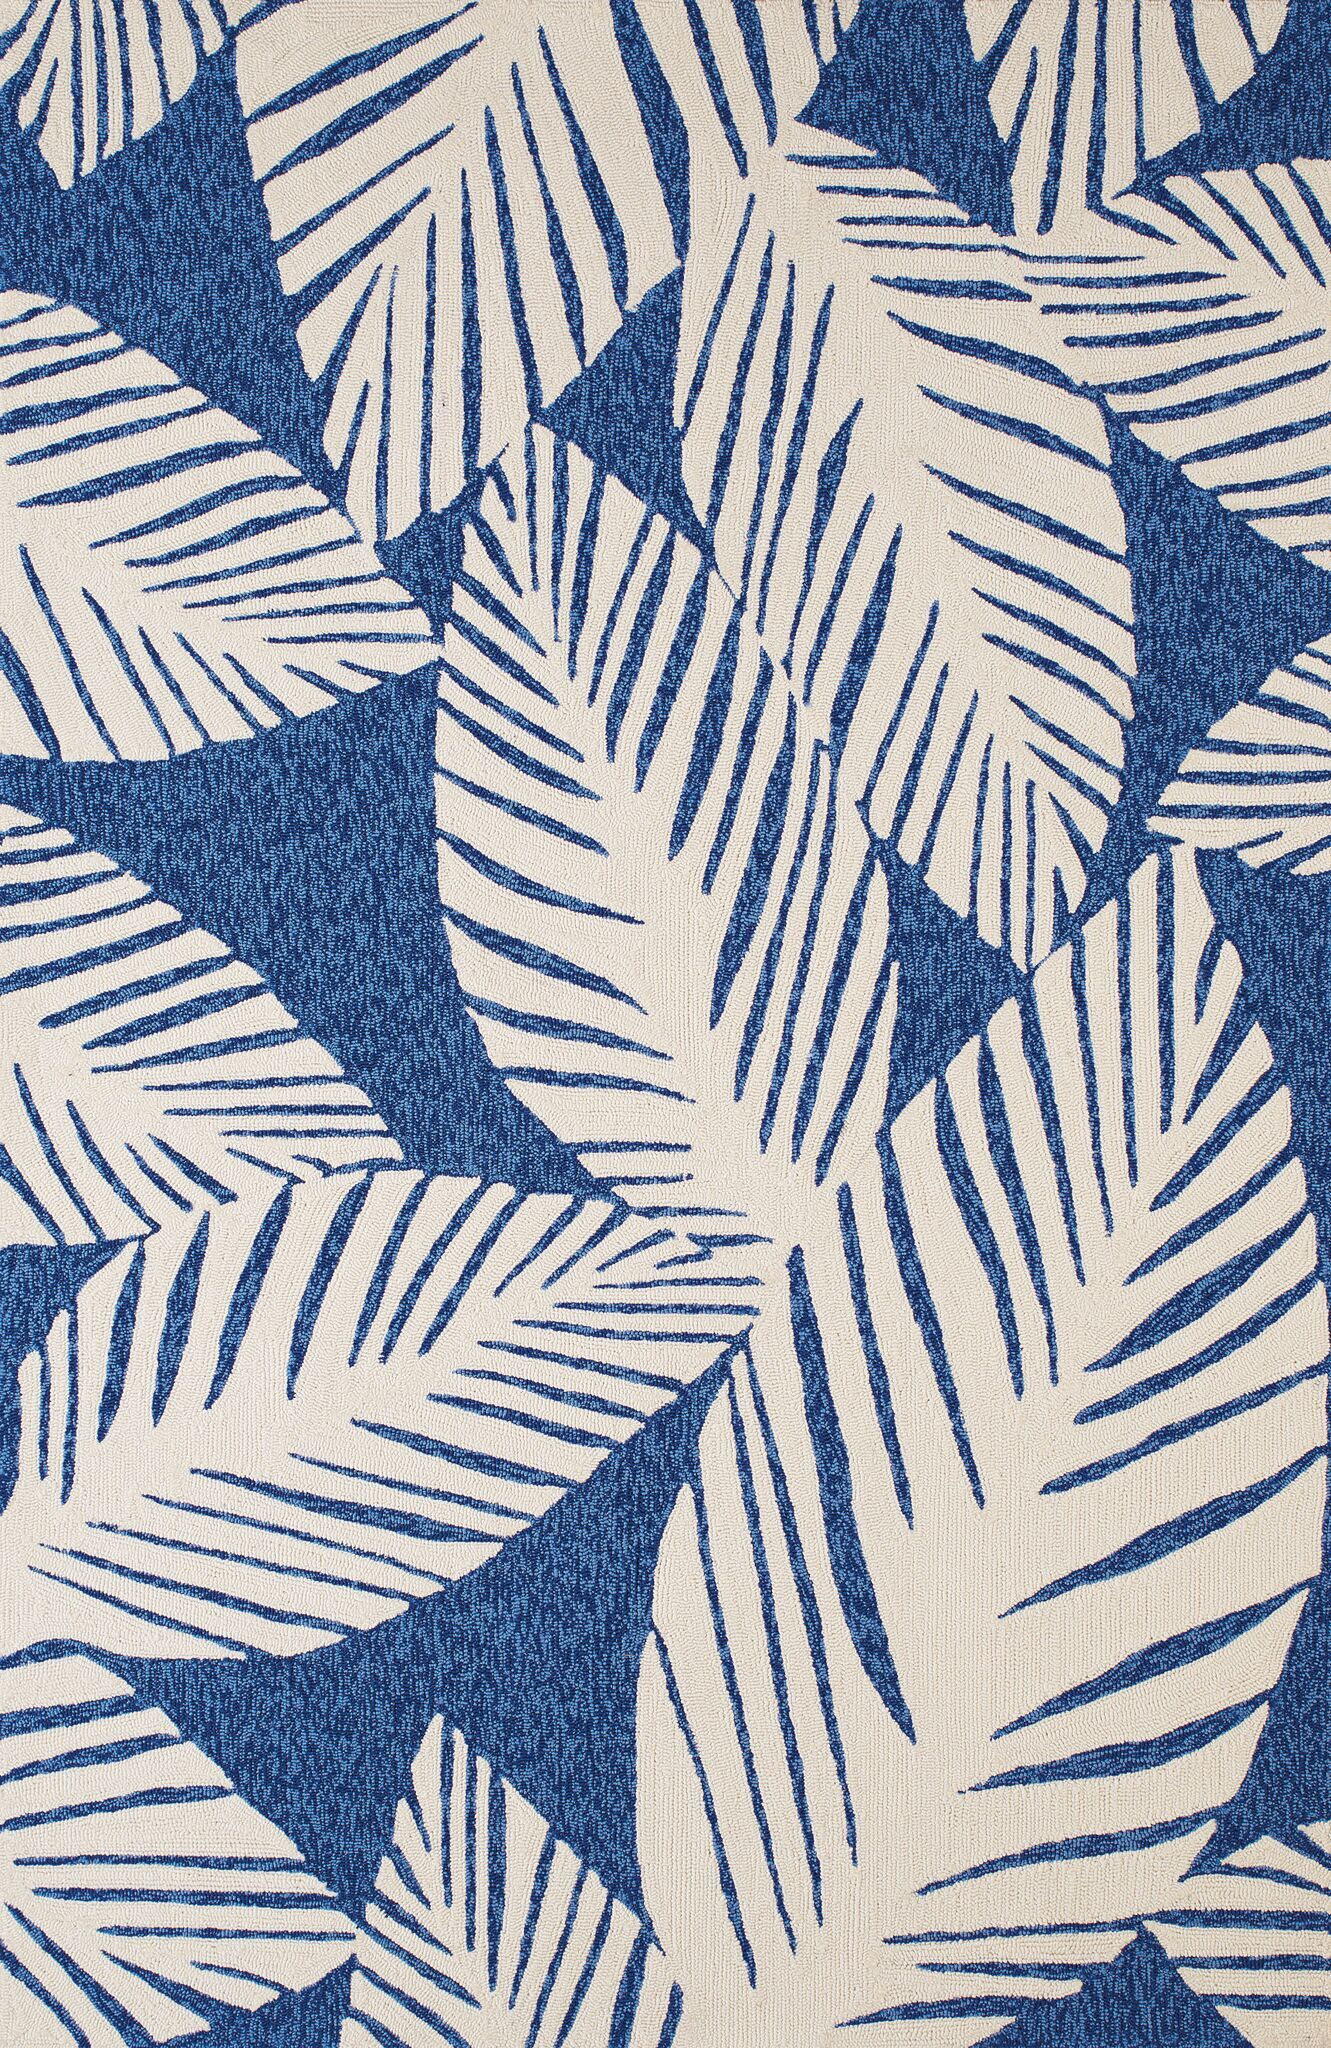 Palm Coast Hand-Woven Blue Indoor/Outdoor Area Rug Rug Size: 5' x 7'6